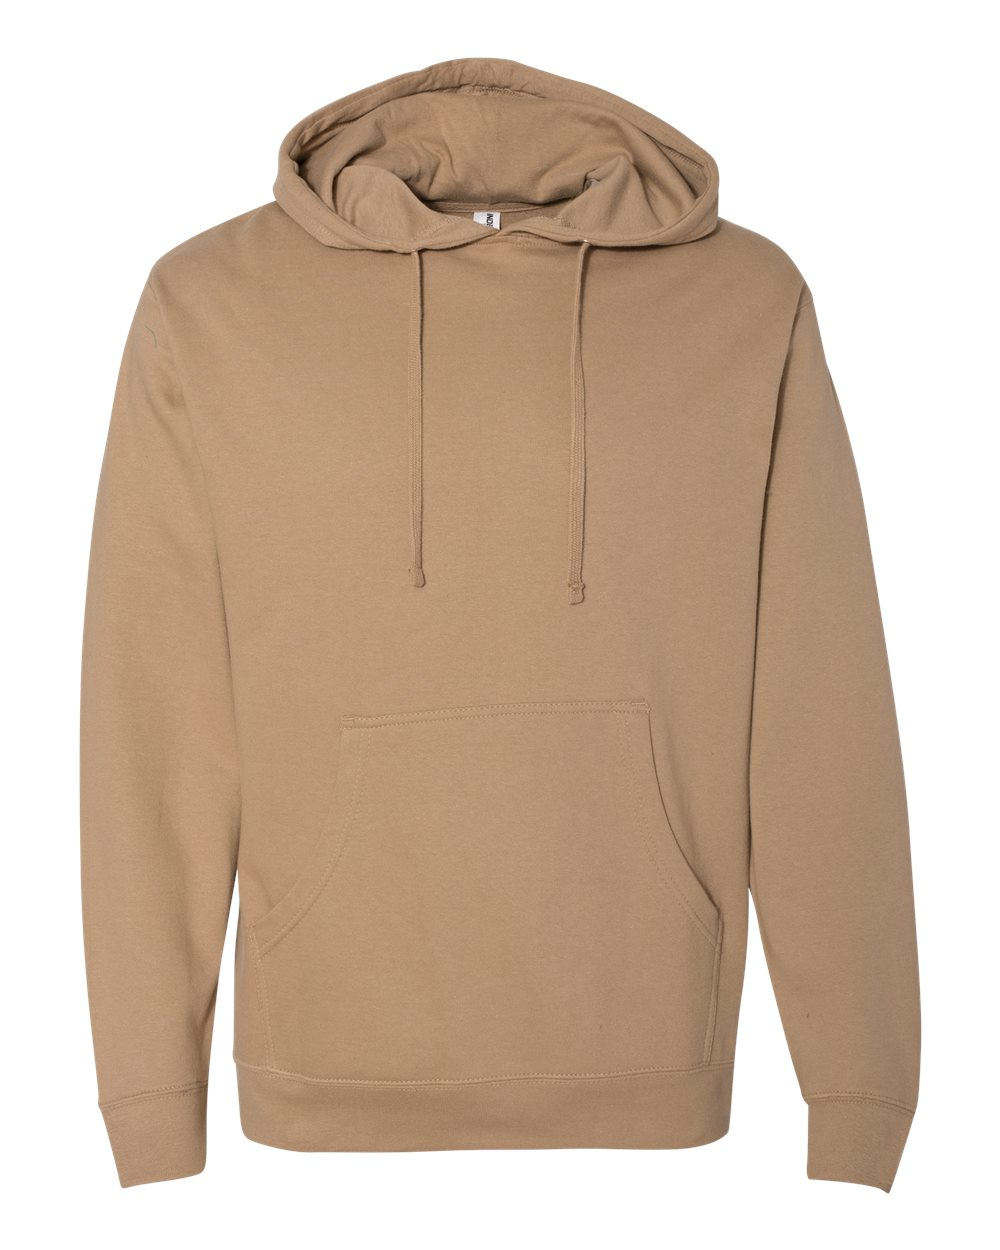 Independent Trading Co. Midweight Hoodie SS4500